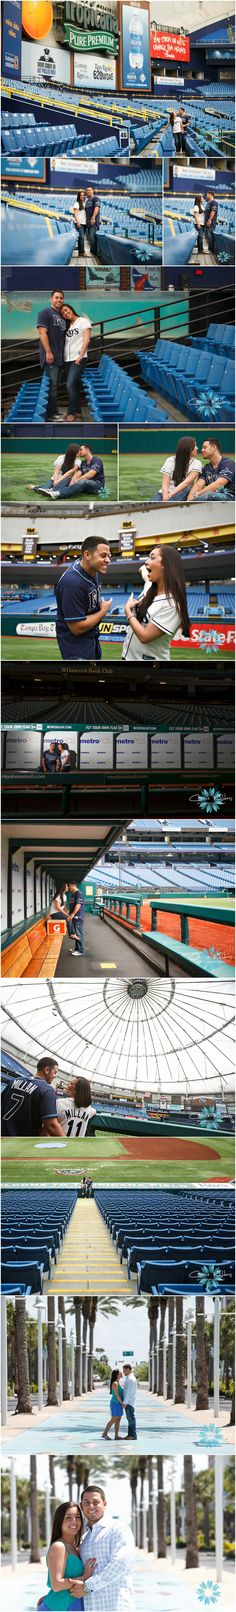 #baseball stadium #engagement  #raysbaseball #tropicanafield